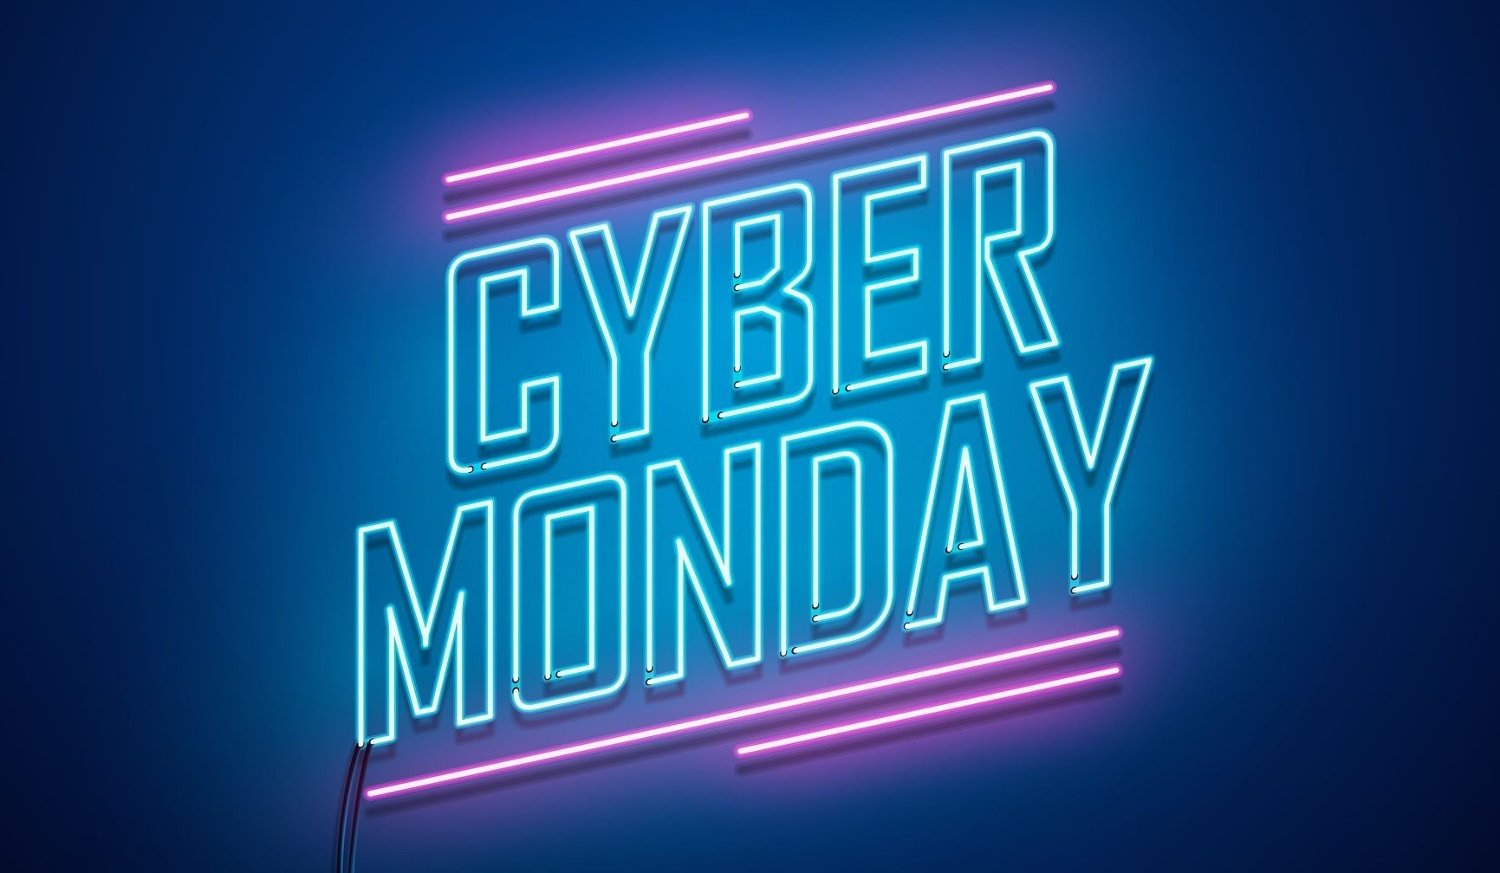 Cyber Monday background. Neon sign. Cyber Monday background. Neon sign. Vector illustration.